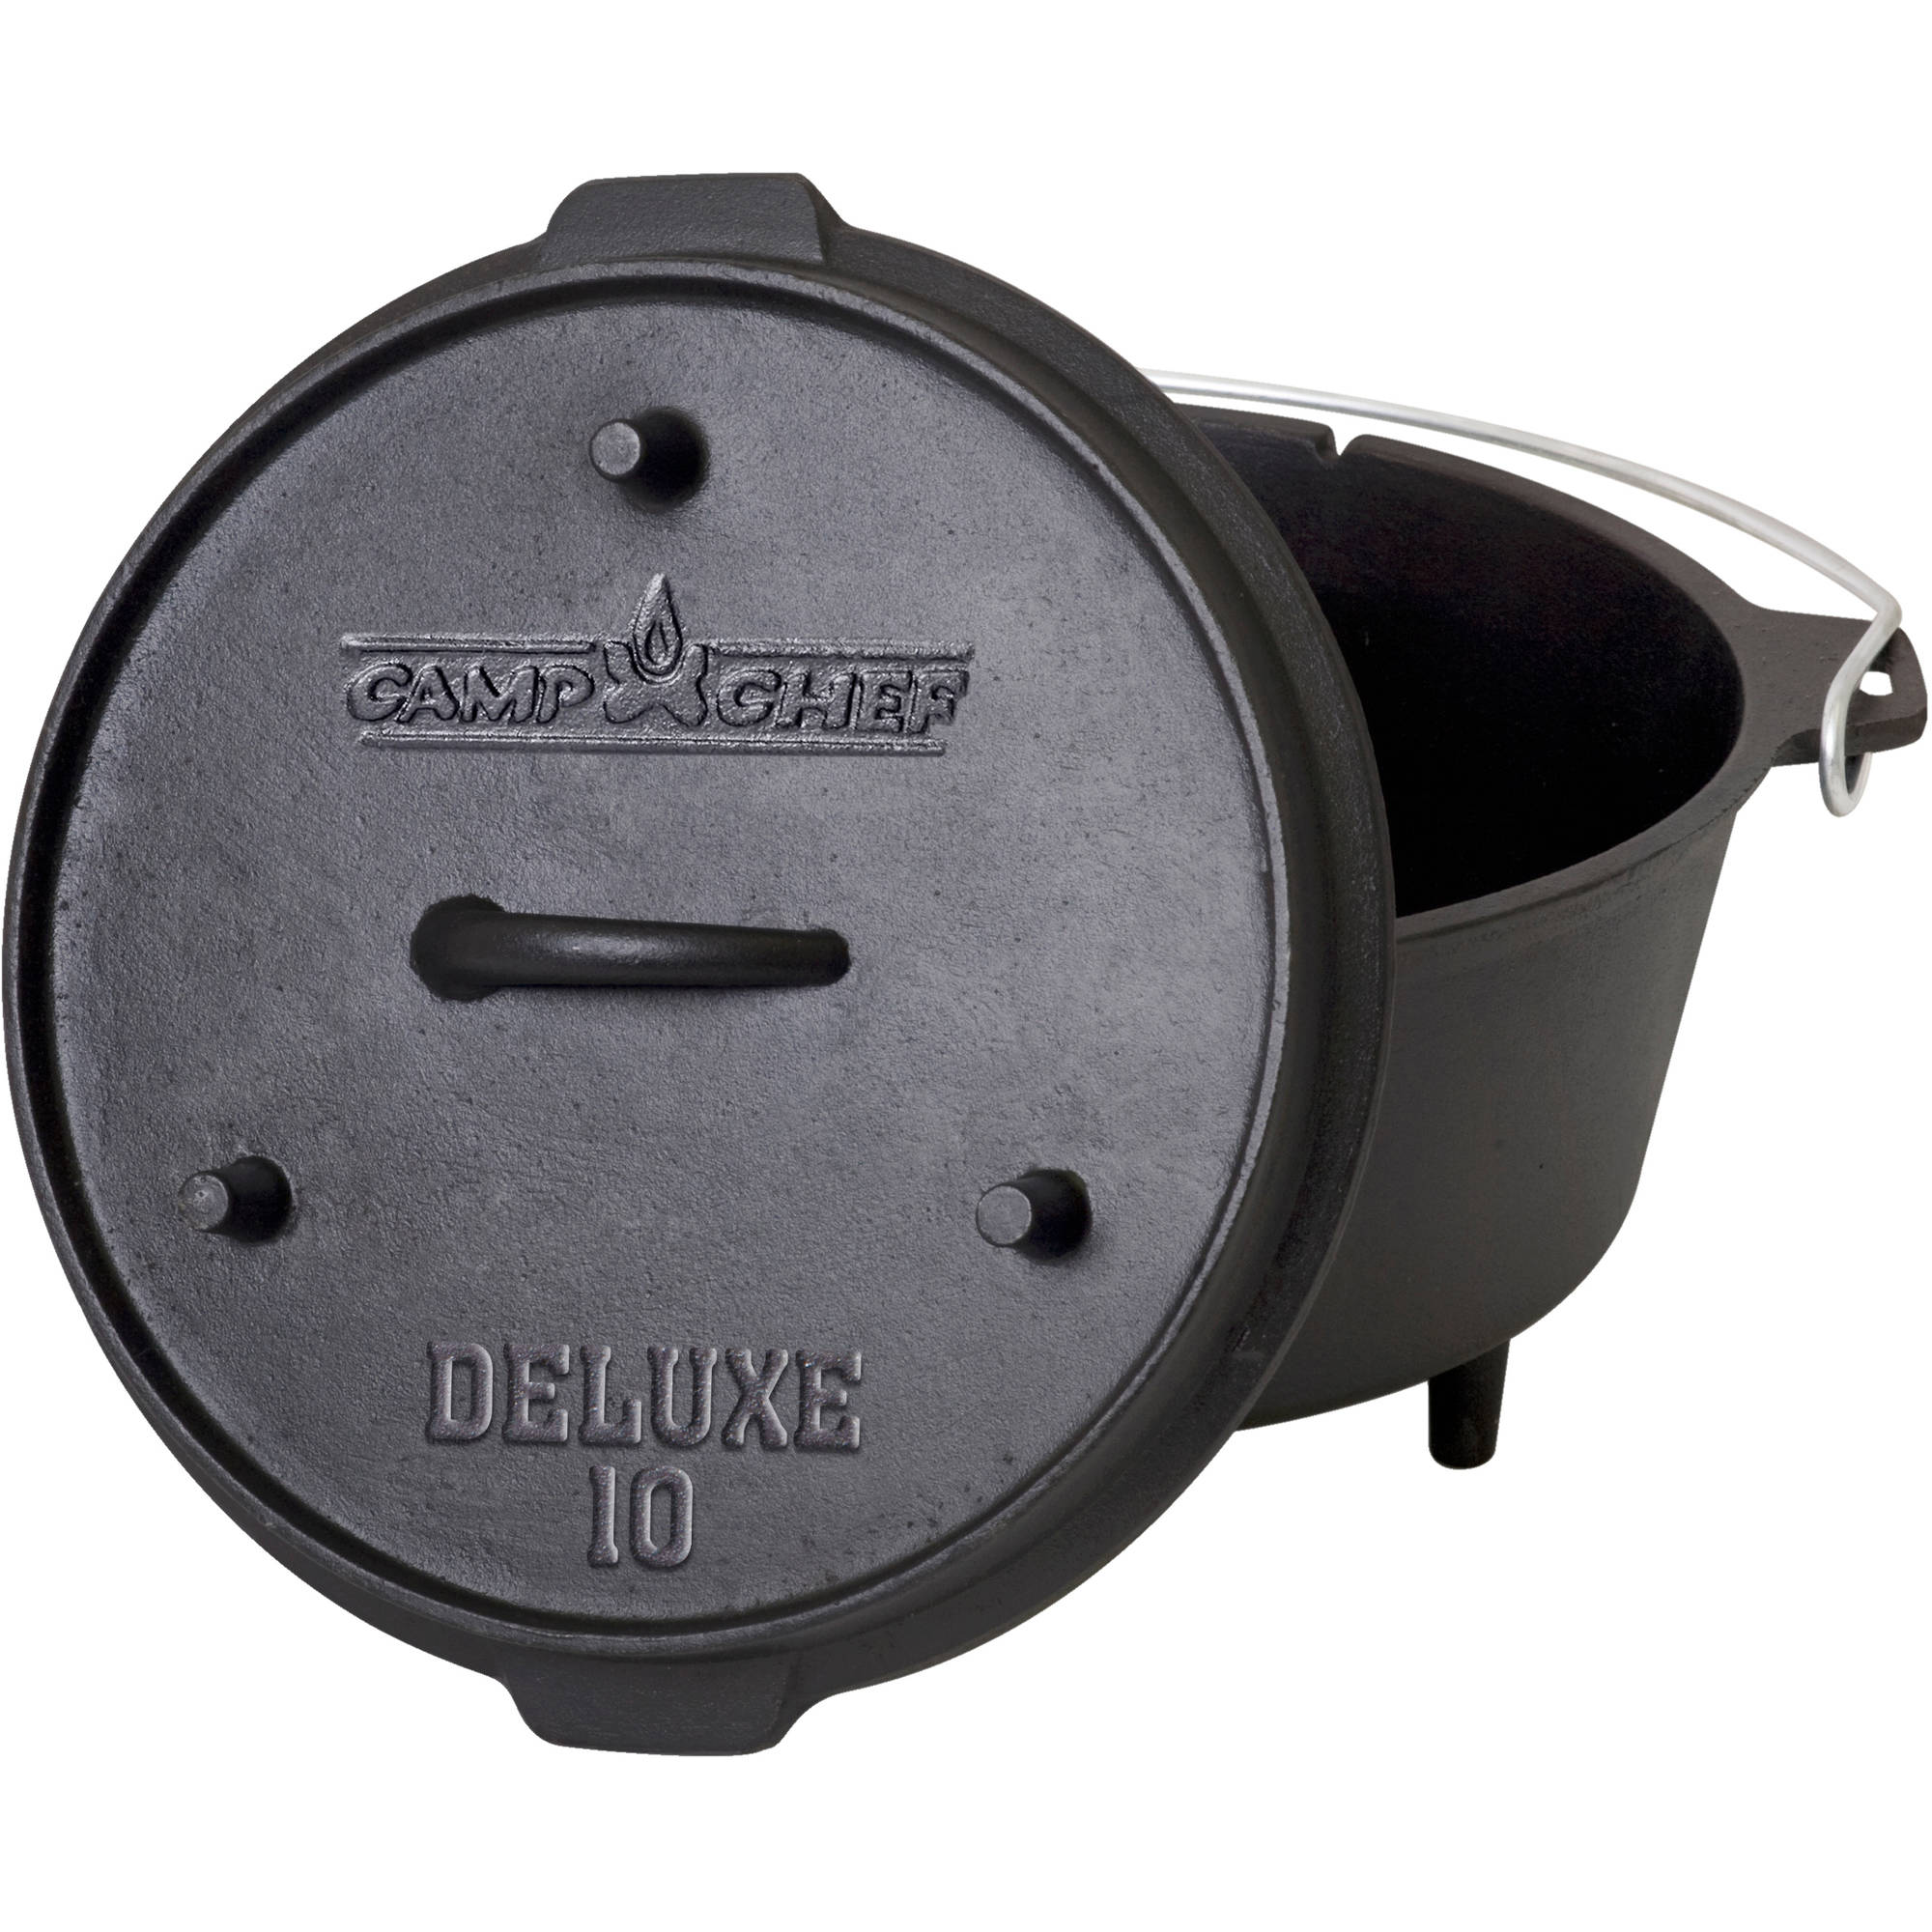 Camp Chef 6-Quart Pre-Seasoned Cast Iron Dutch Oven